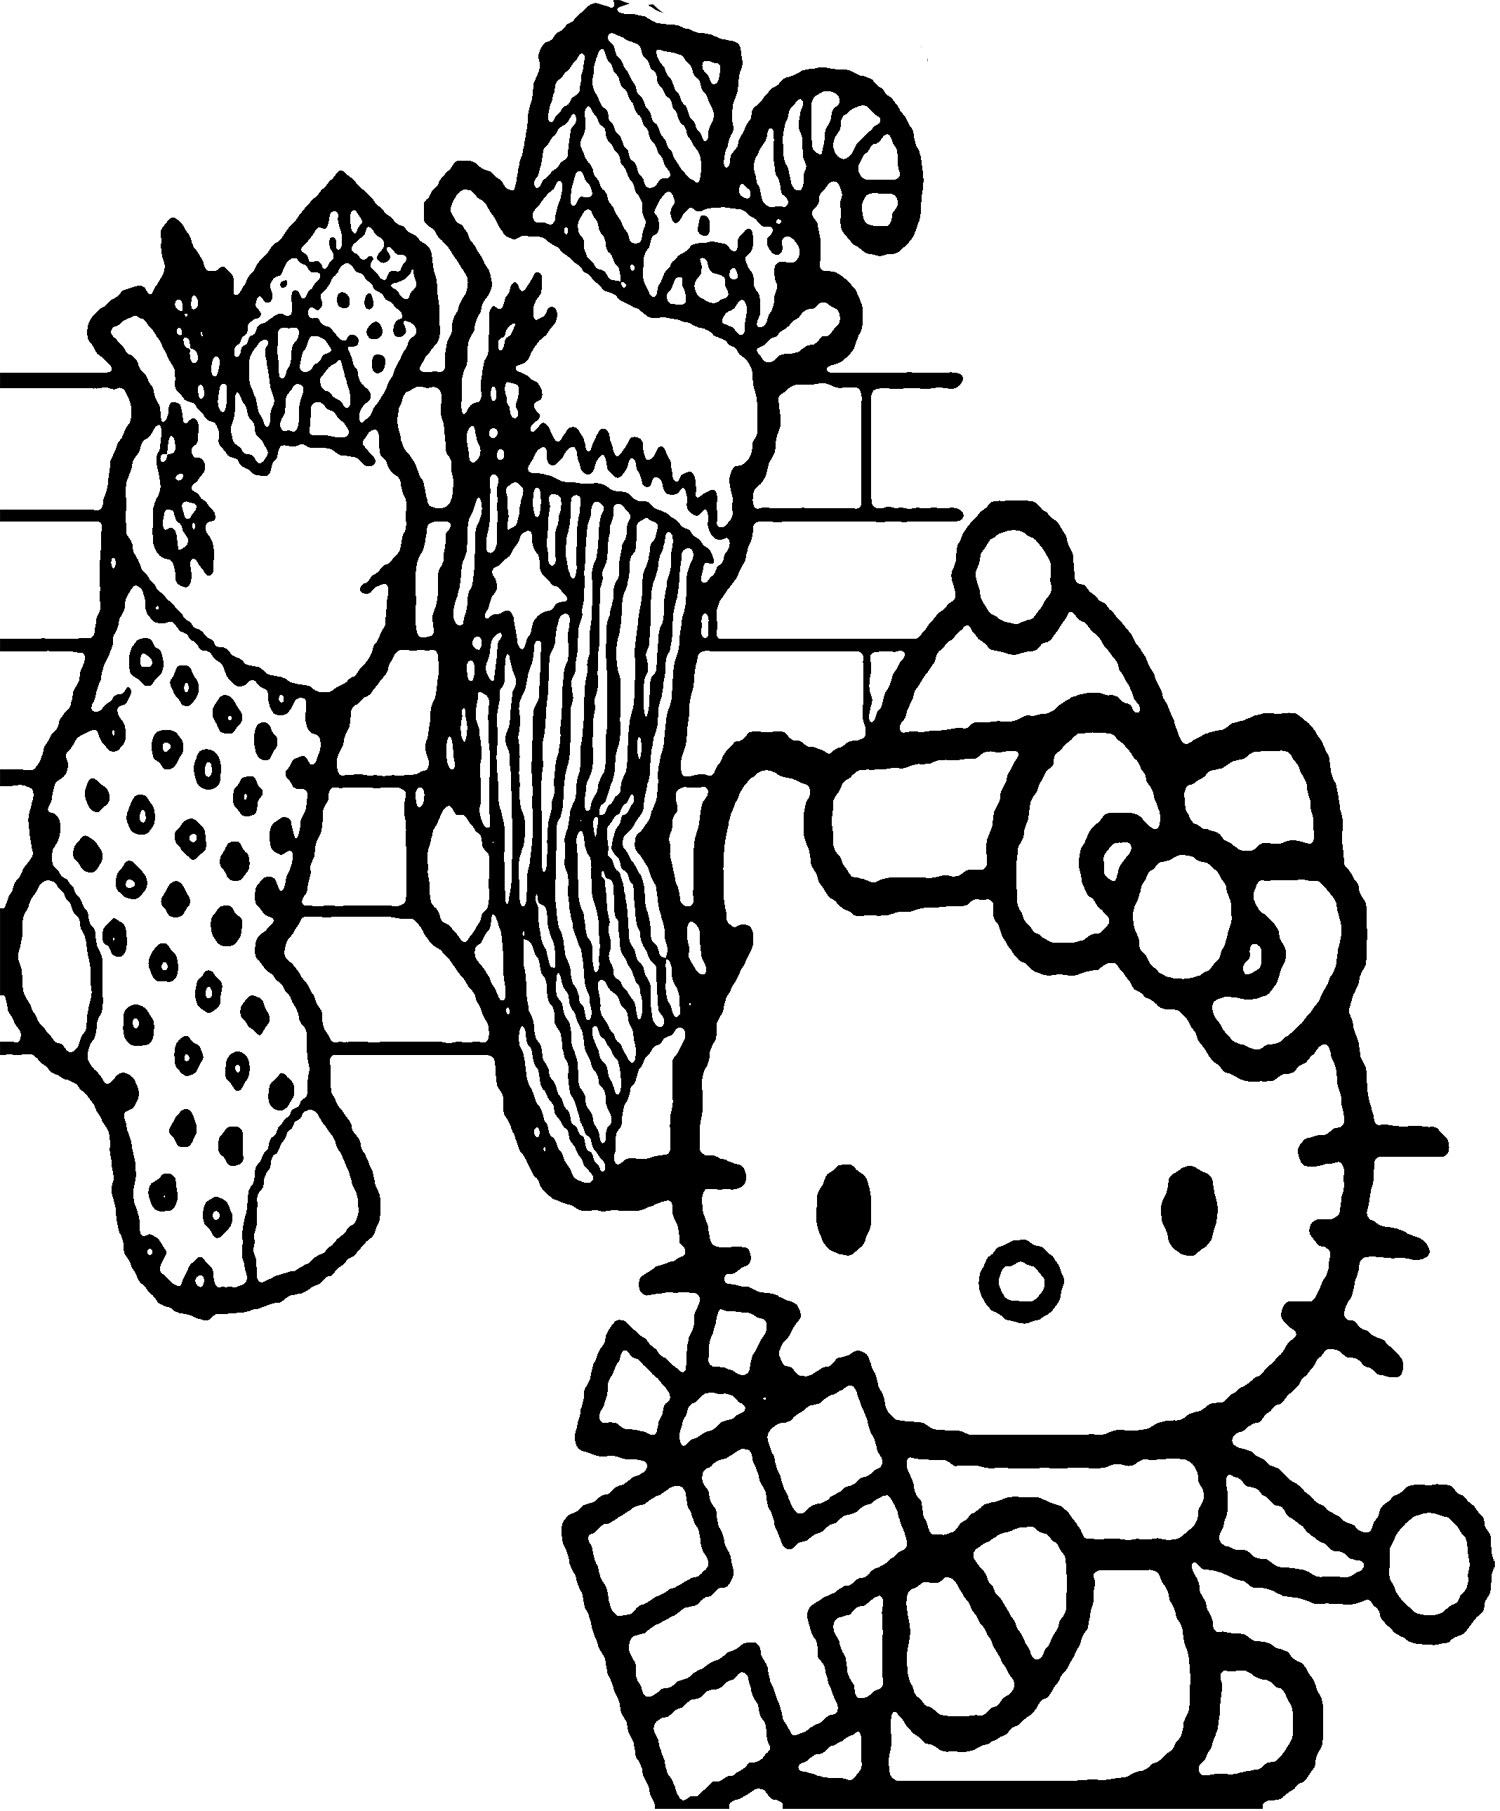 hello kitty christmas colouring pages hello kitty christmas coloring pages 2 hello kitty forever christmas colouring pages hello kitty